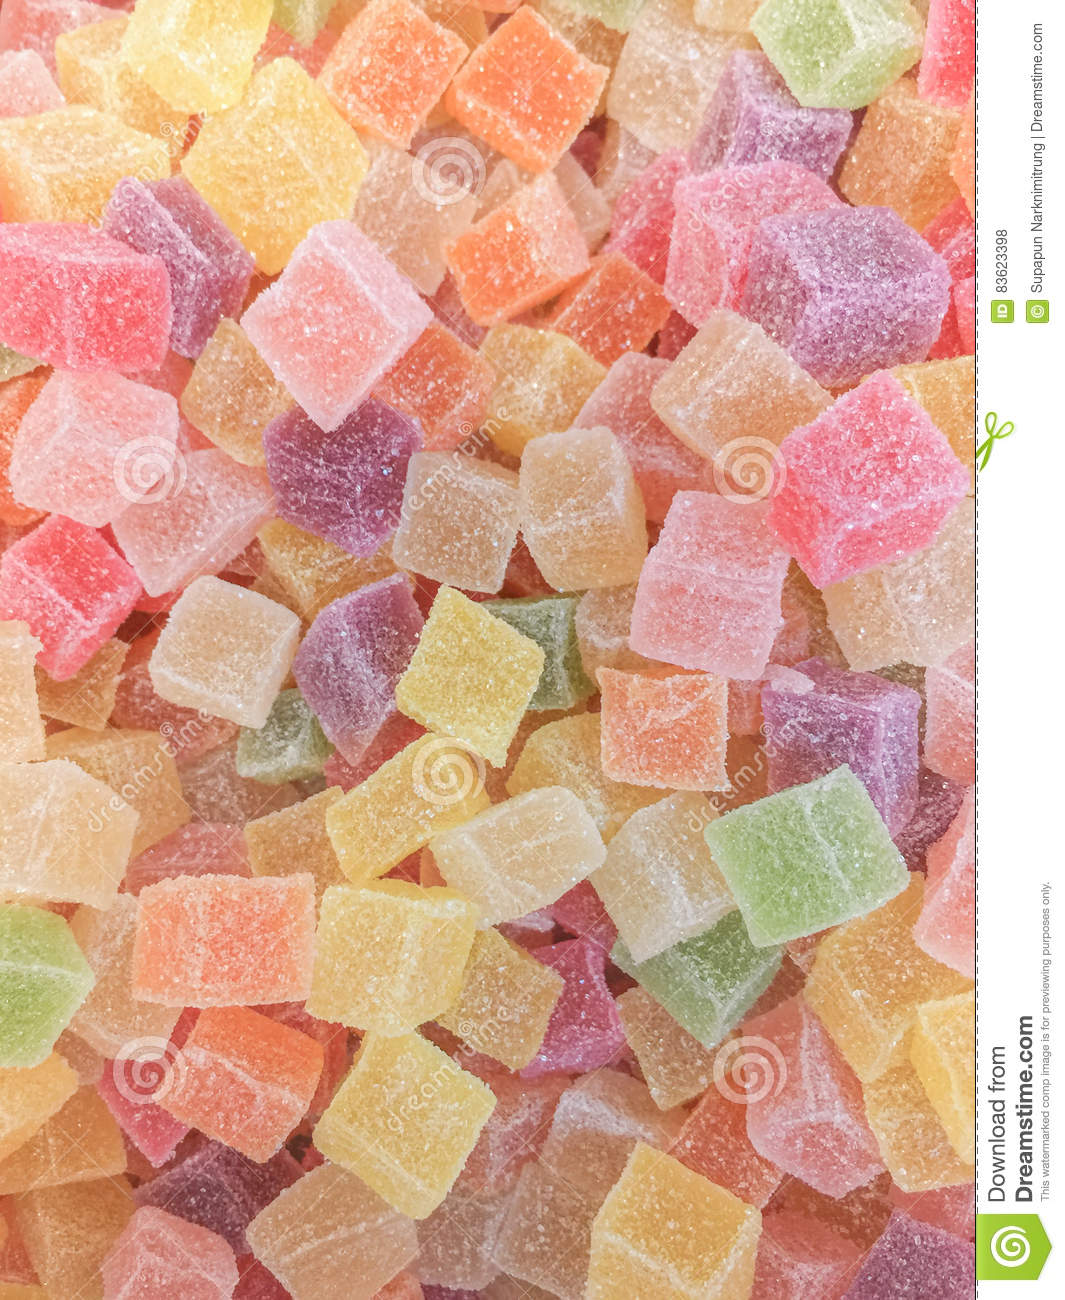 Pastel Purple Pink Green Blue Timber Wood Look: Colorful Jelly Candy Bonbon Snack Group. Sweet For